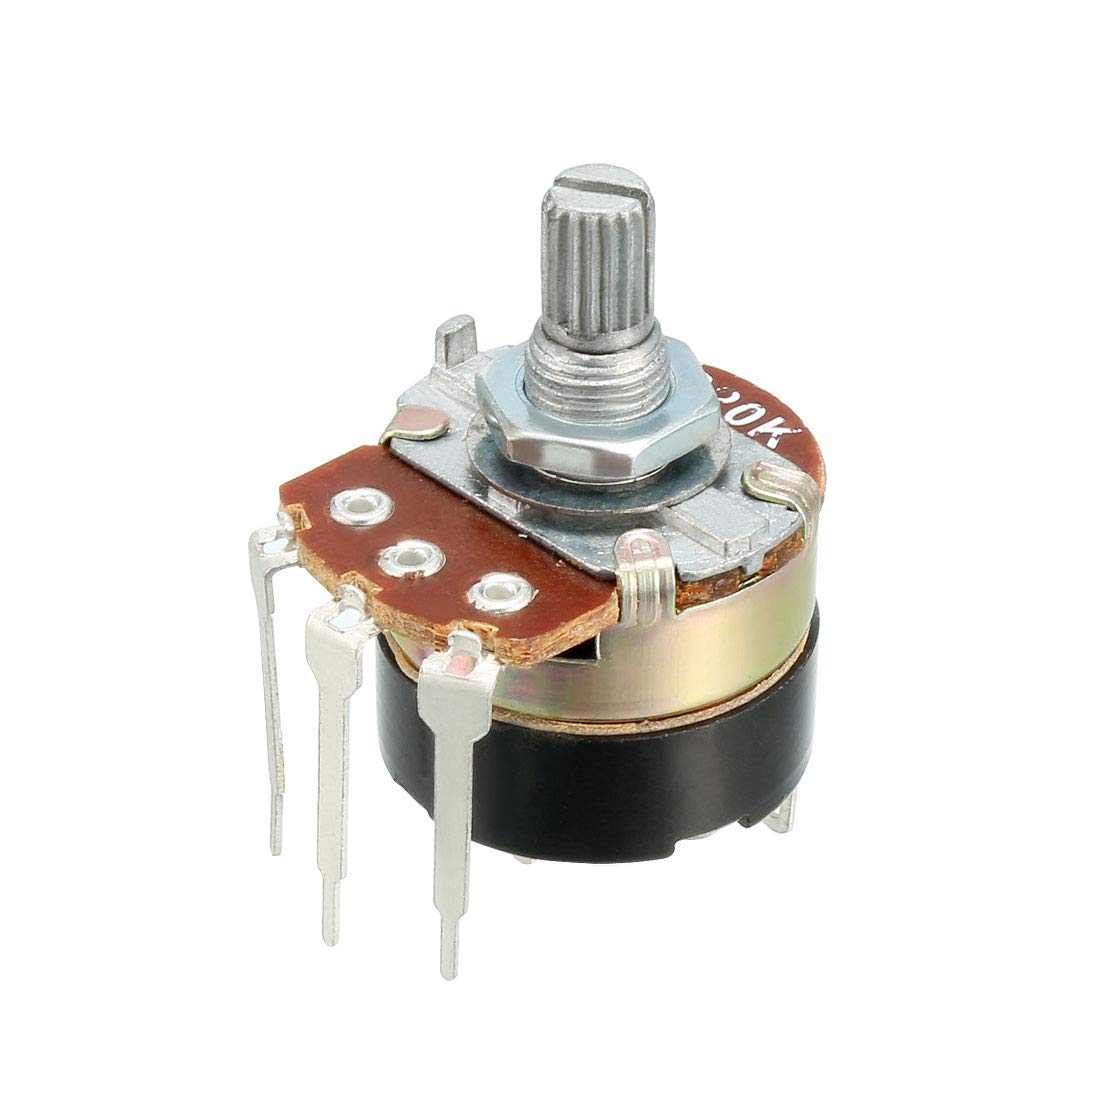 Uxcell 20k Ohm Variable Resistors Single Turn Rotary Carbon Film Potentiometer Wiring Resistor 1pcs Wh138